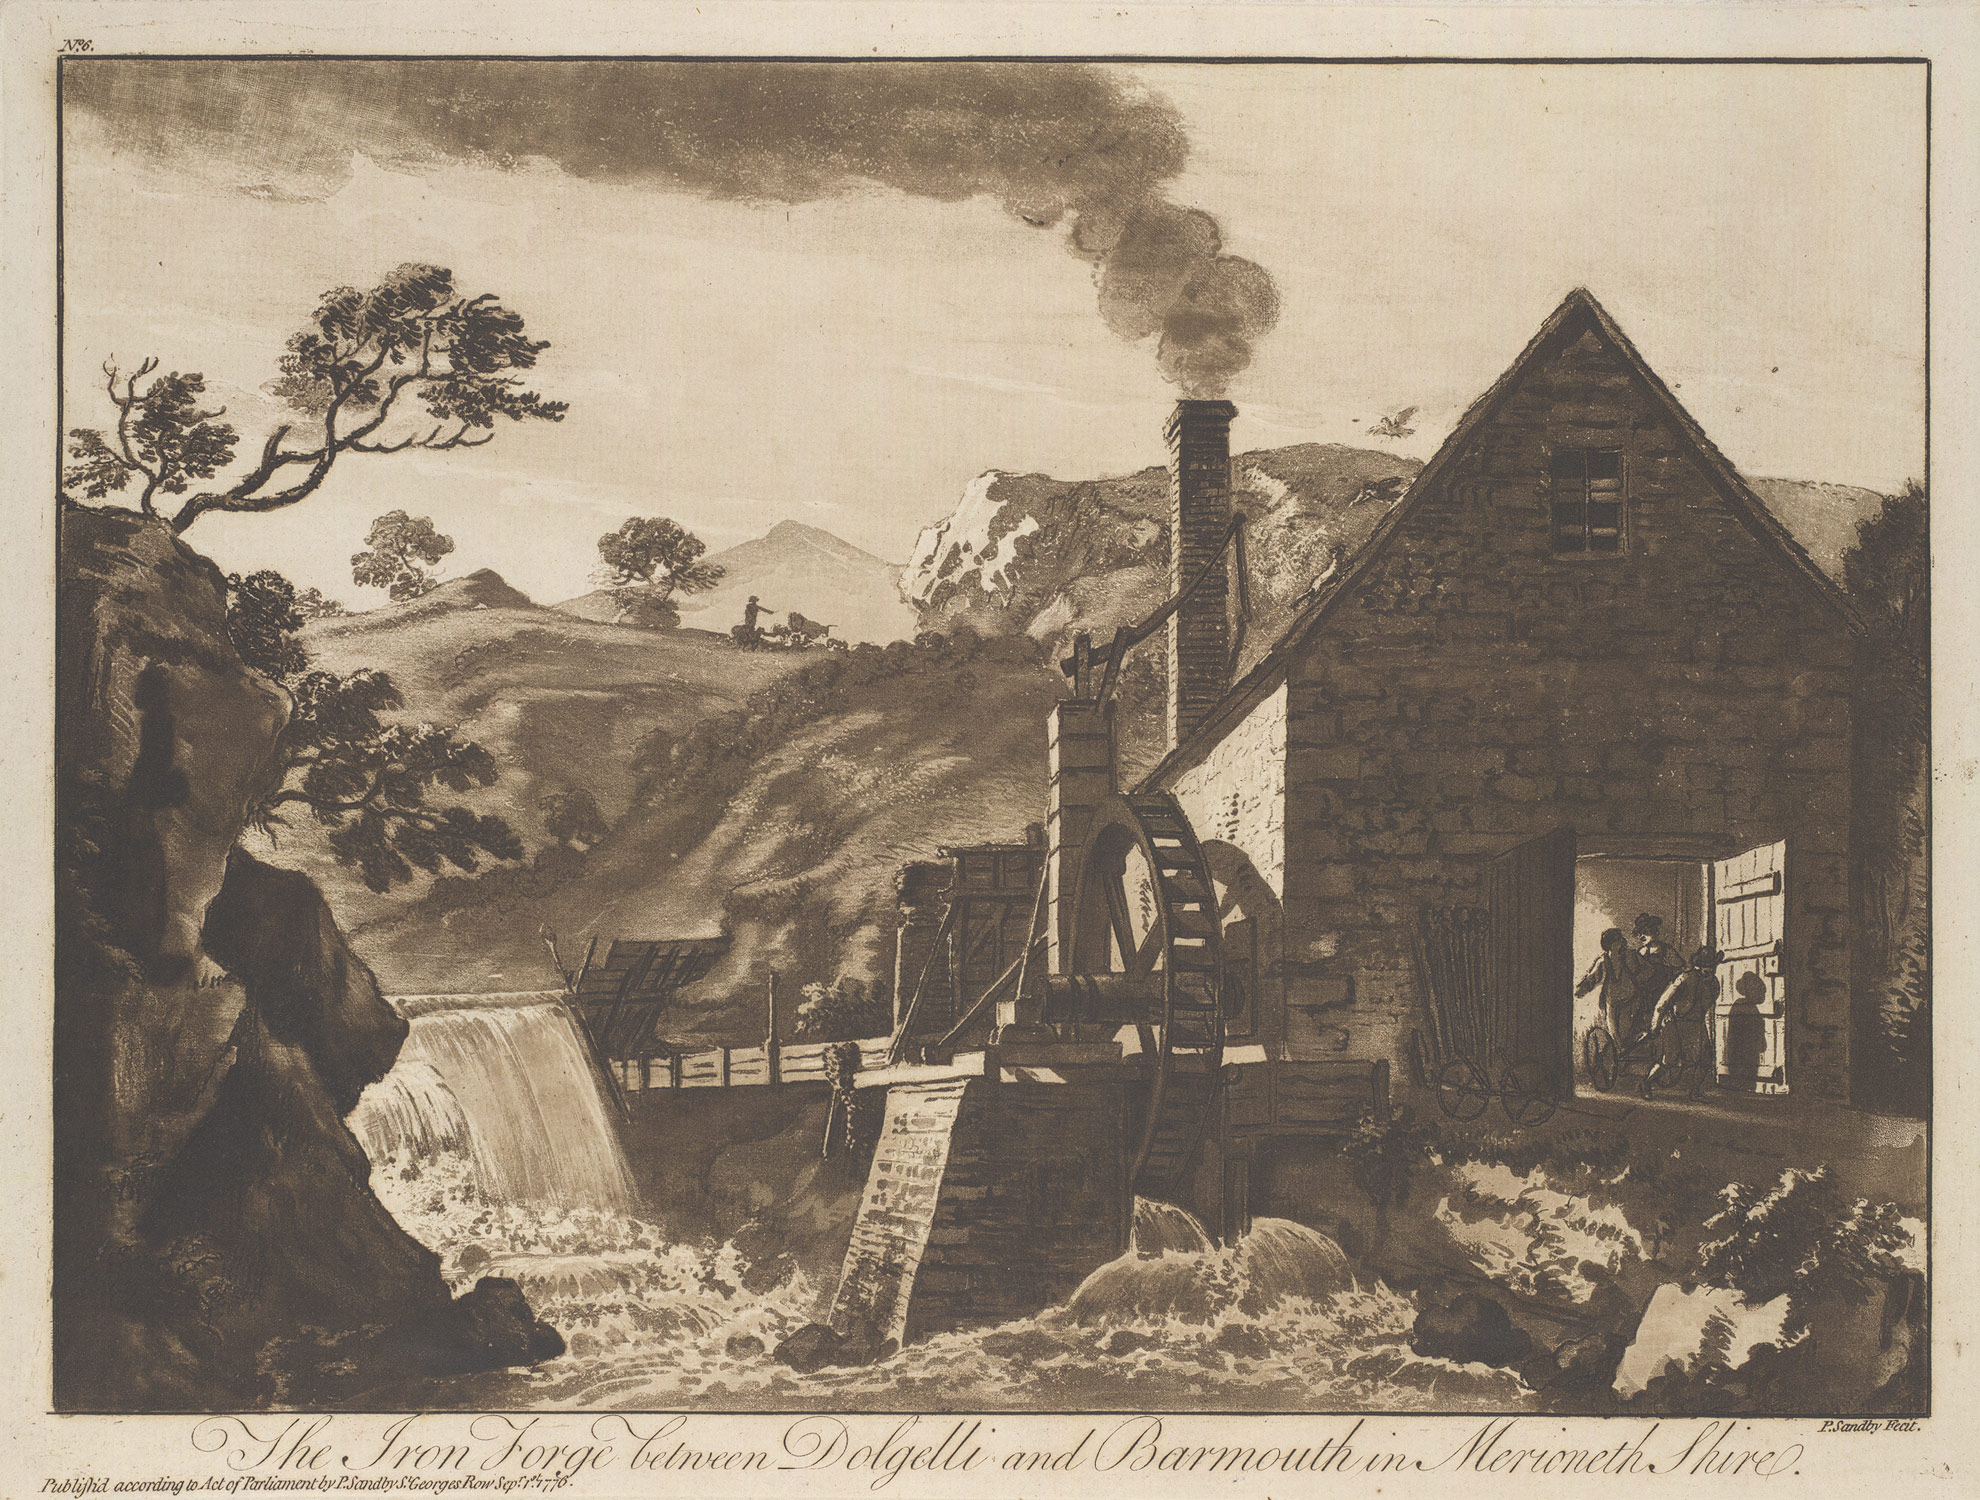 The Iron Forge between Dolgelli and Barmouth in Merioneth Shire: Plate 6 of XII Views in North Wales